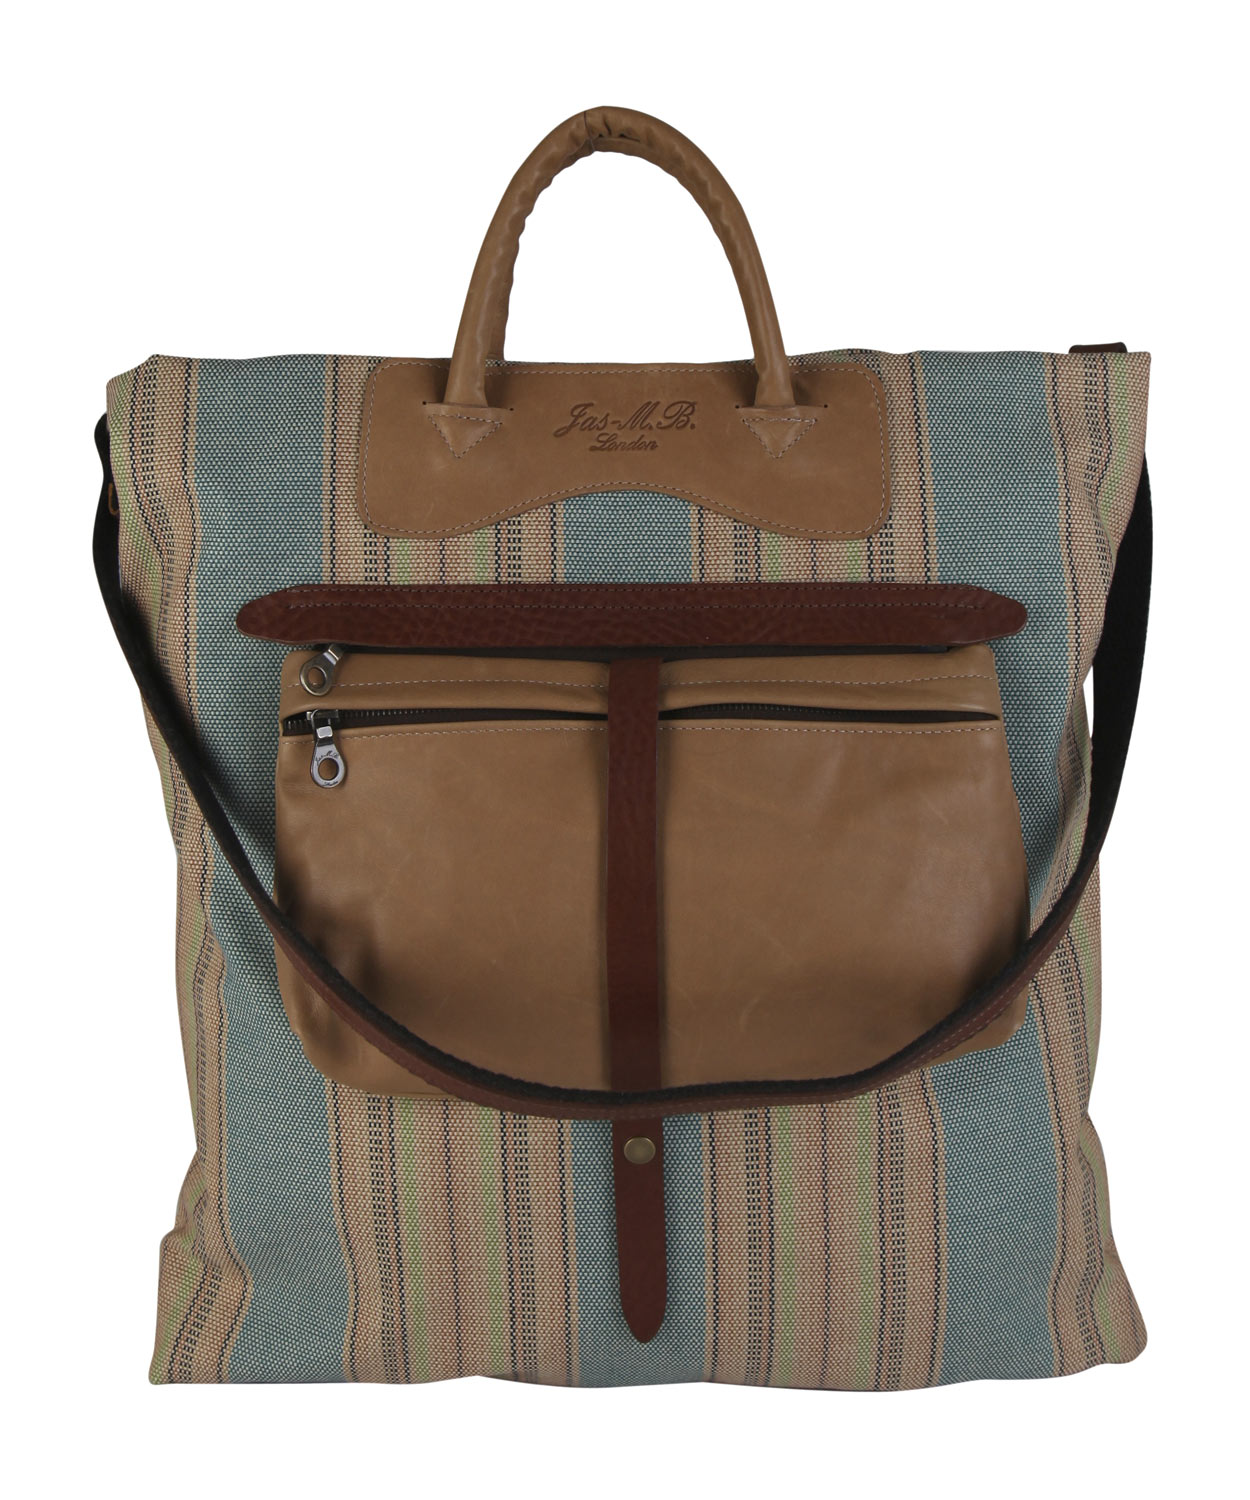 Shop Women's Totes At liveblog.ga And Enjoy Free Shipping & Returns On All Orders.